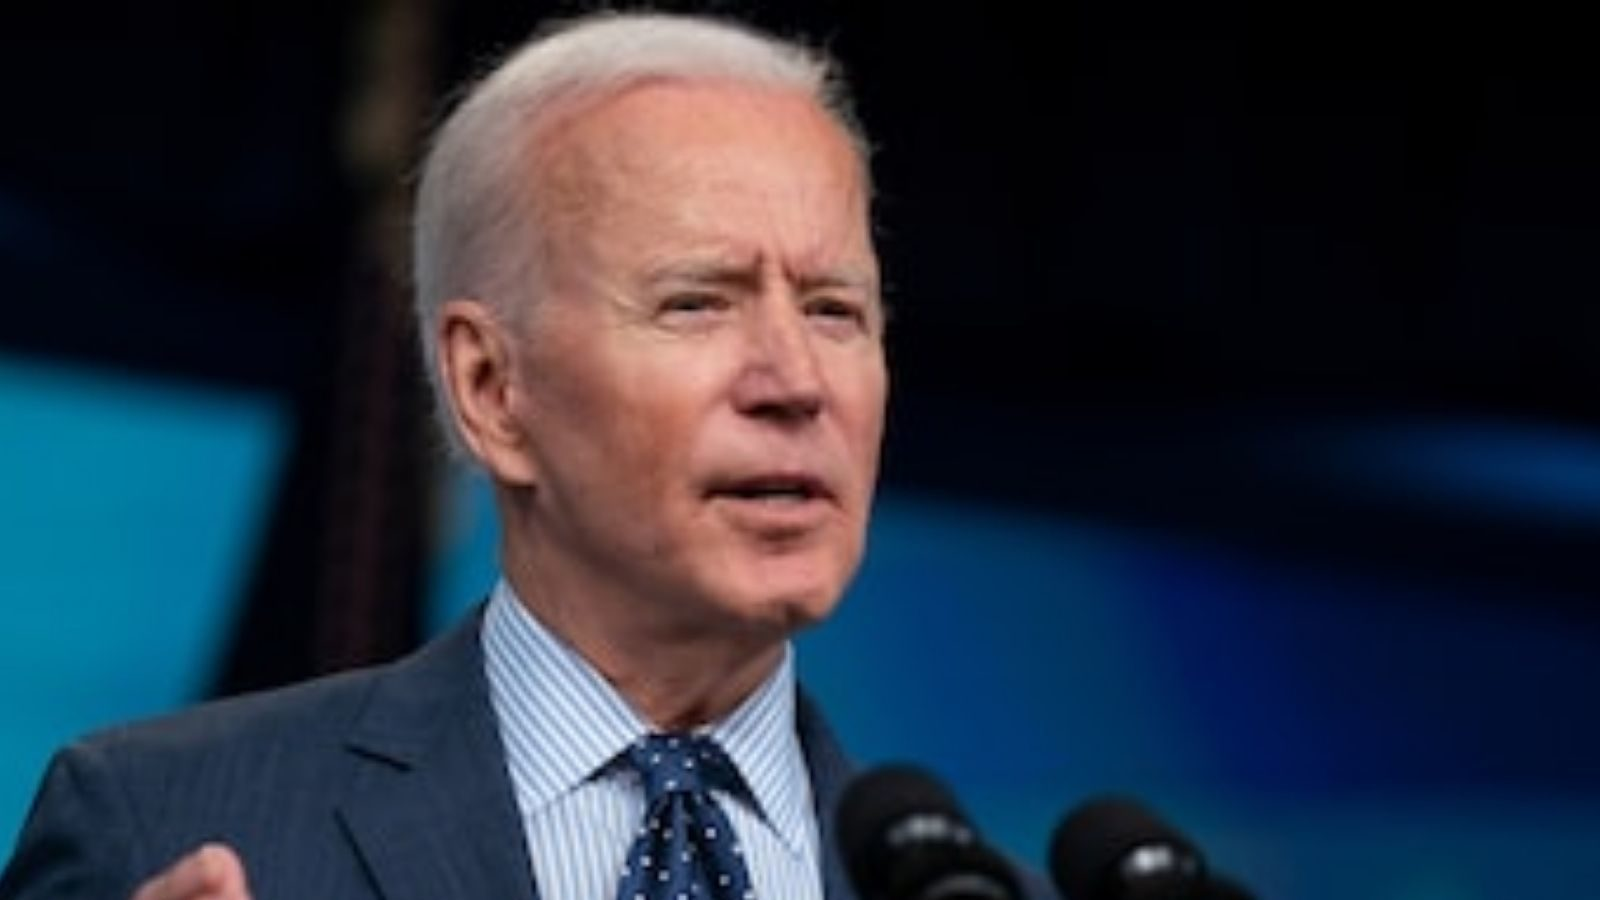 Biden wants to address the delay in the green card system